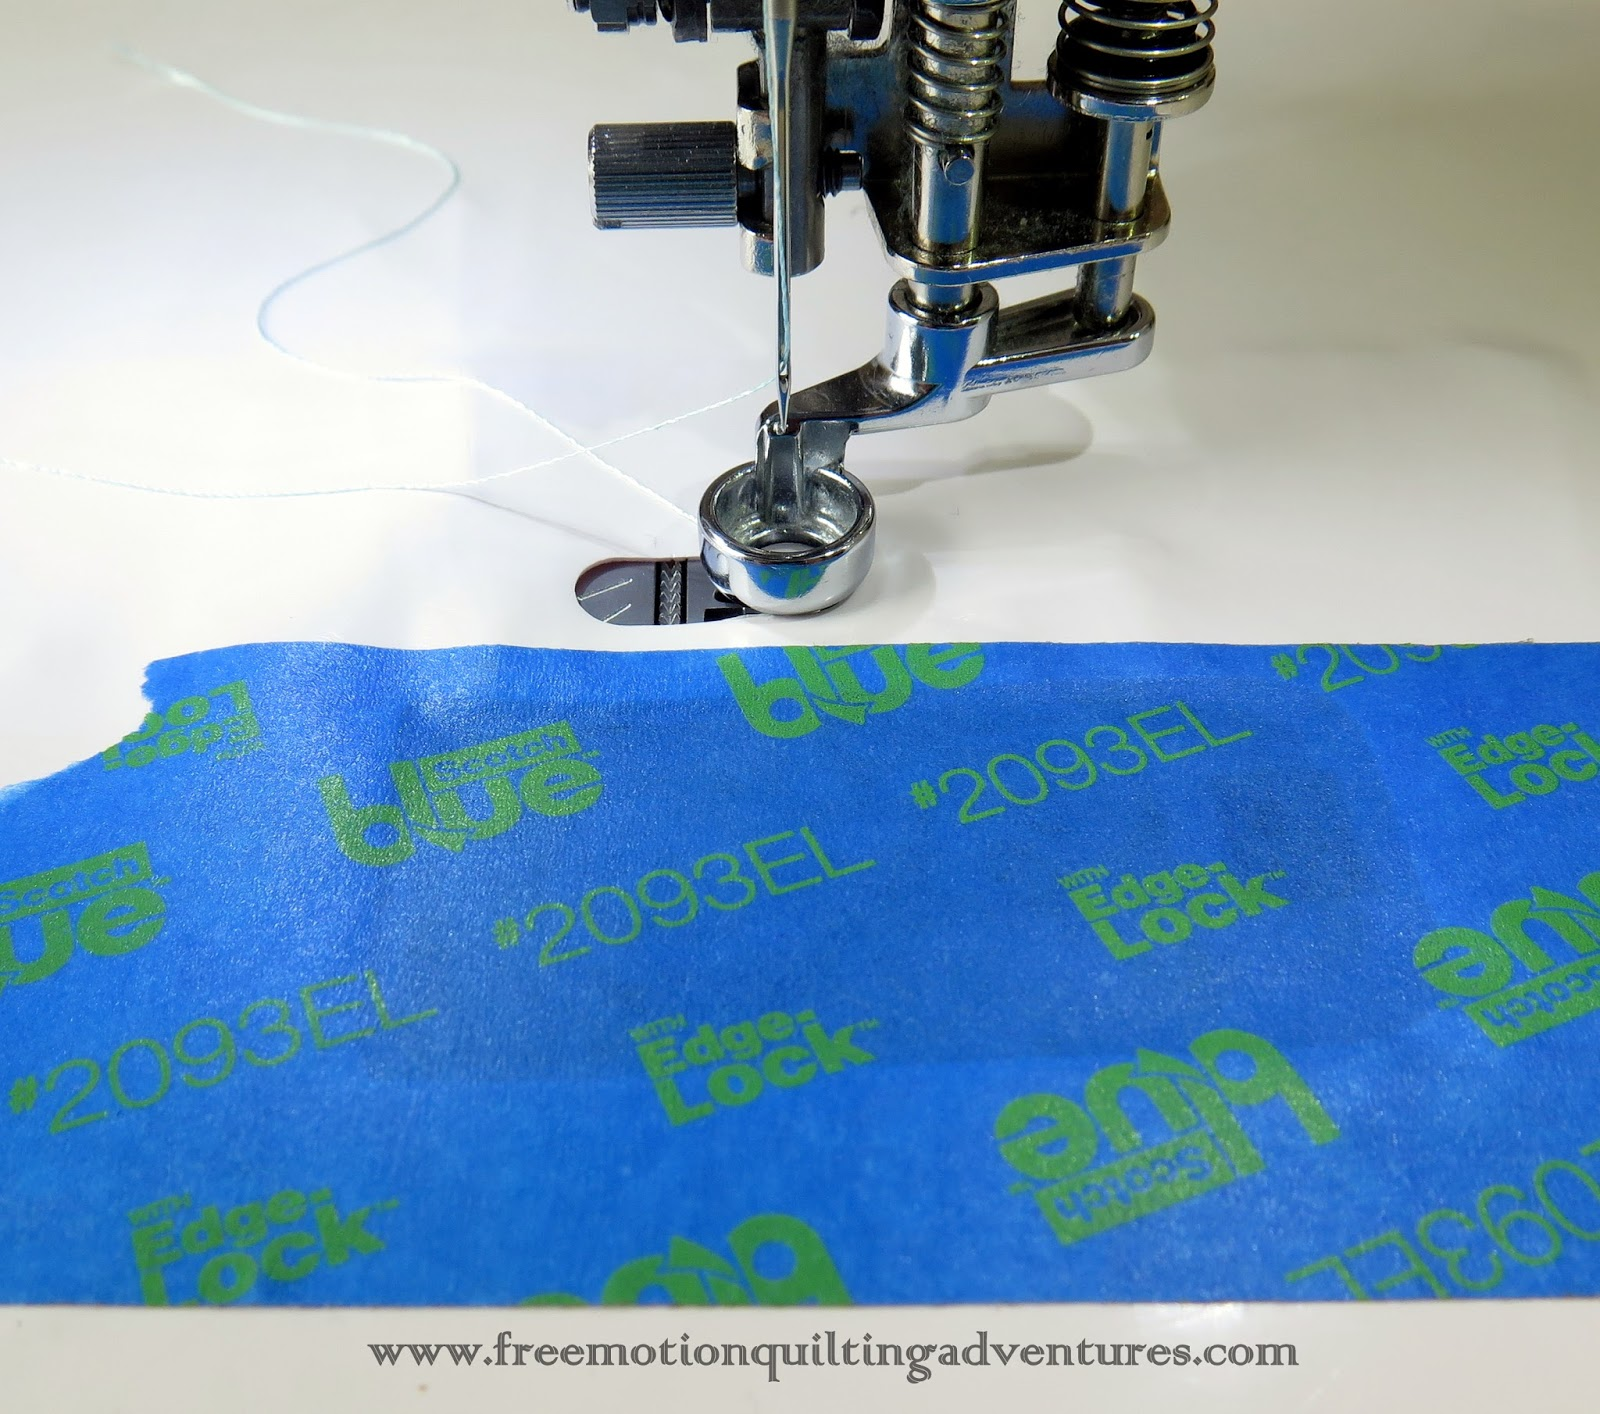 Quilting Slider Mat: Amy's Free Motion Quilting Adventures: July 2015